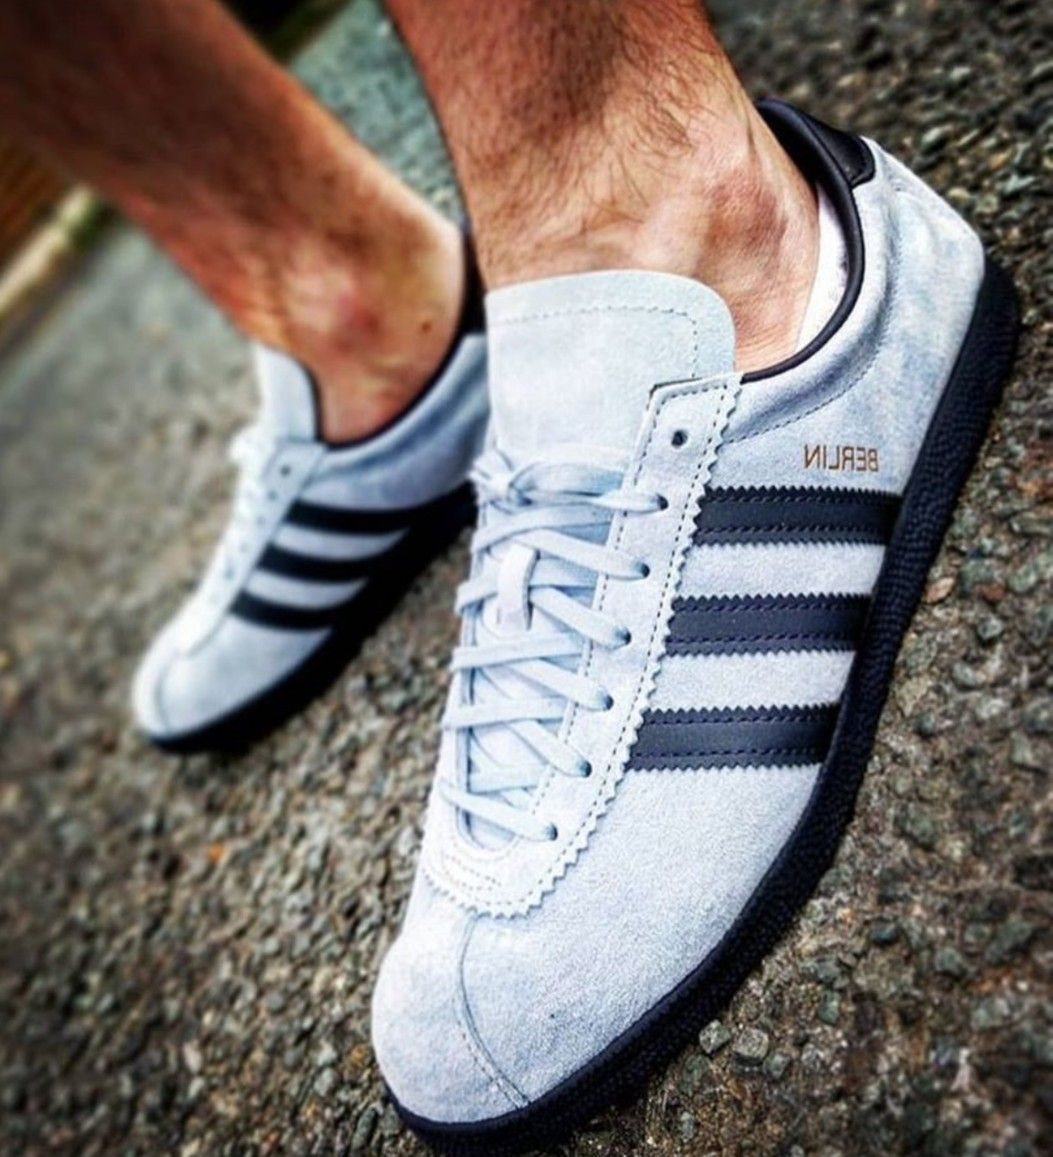 new concept 27e6f adbac Reverse colourway Berlin on feet on the street Adidas Og, Adidas Sneakers,  Football Casuals